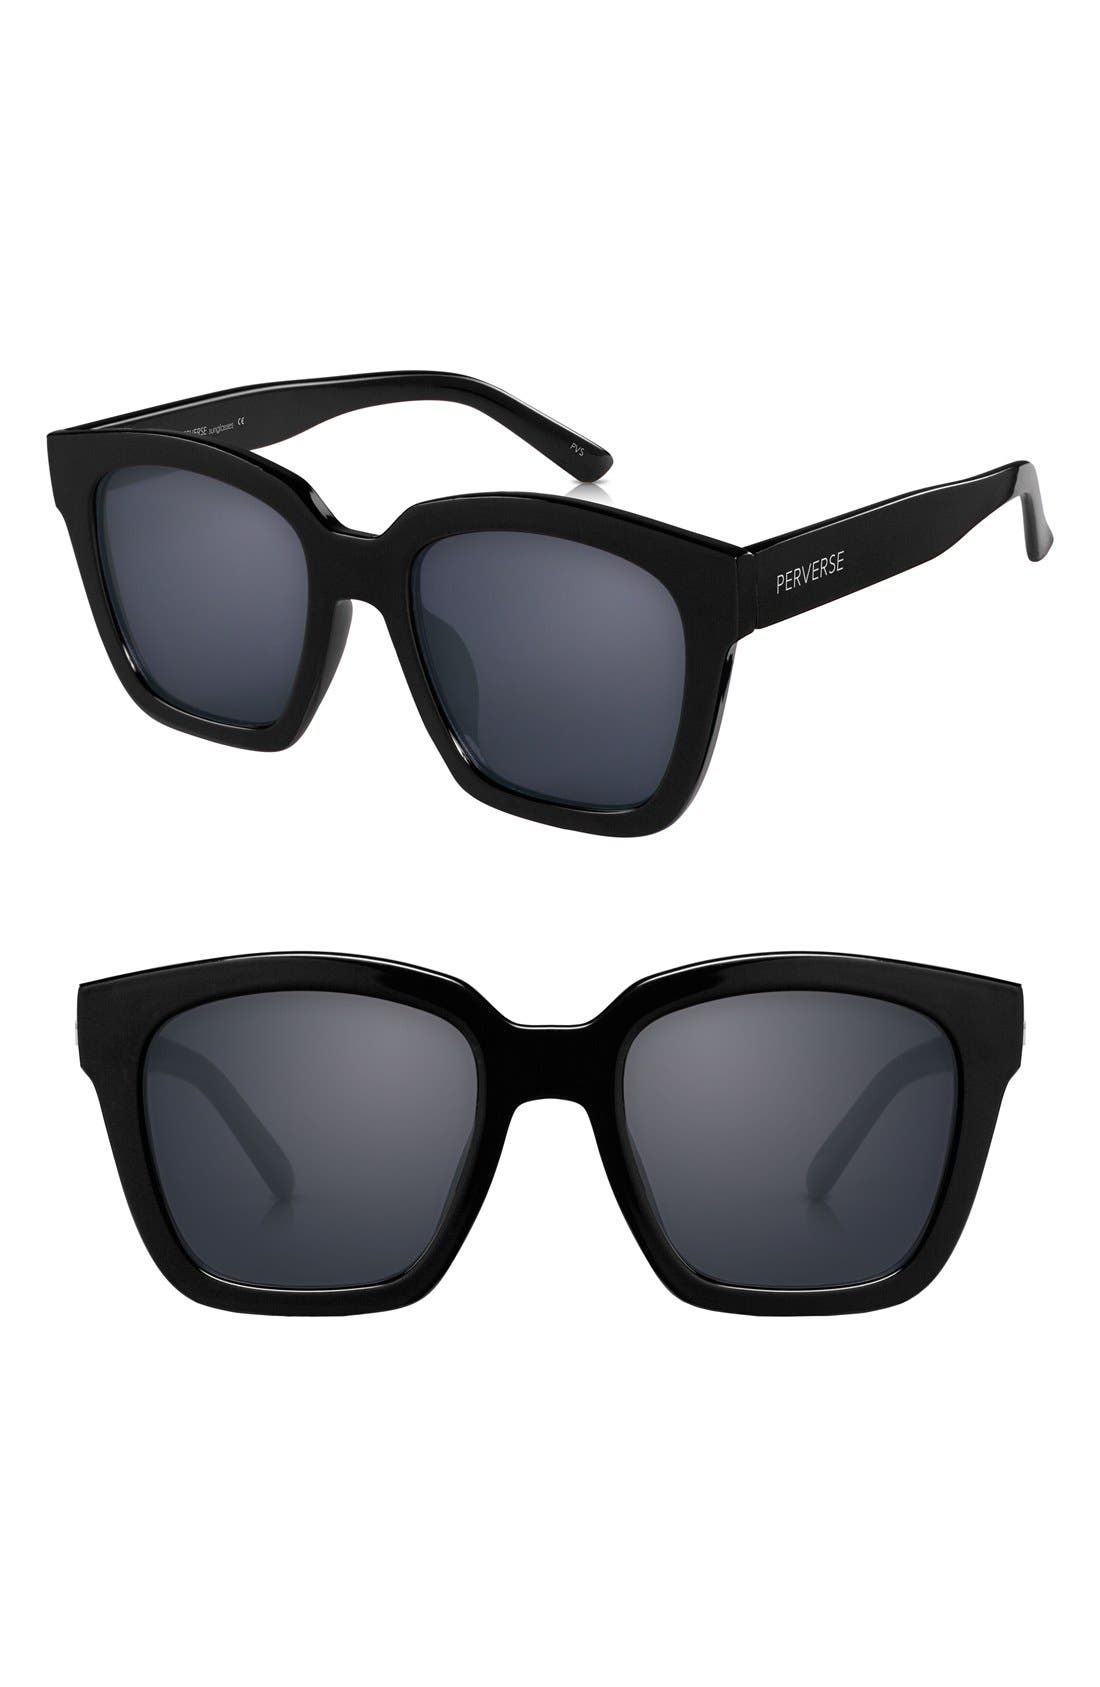 Alternate Image 1 Selected - PERVERSE Ace 58mm Sunglasses